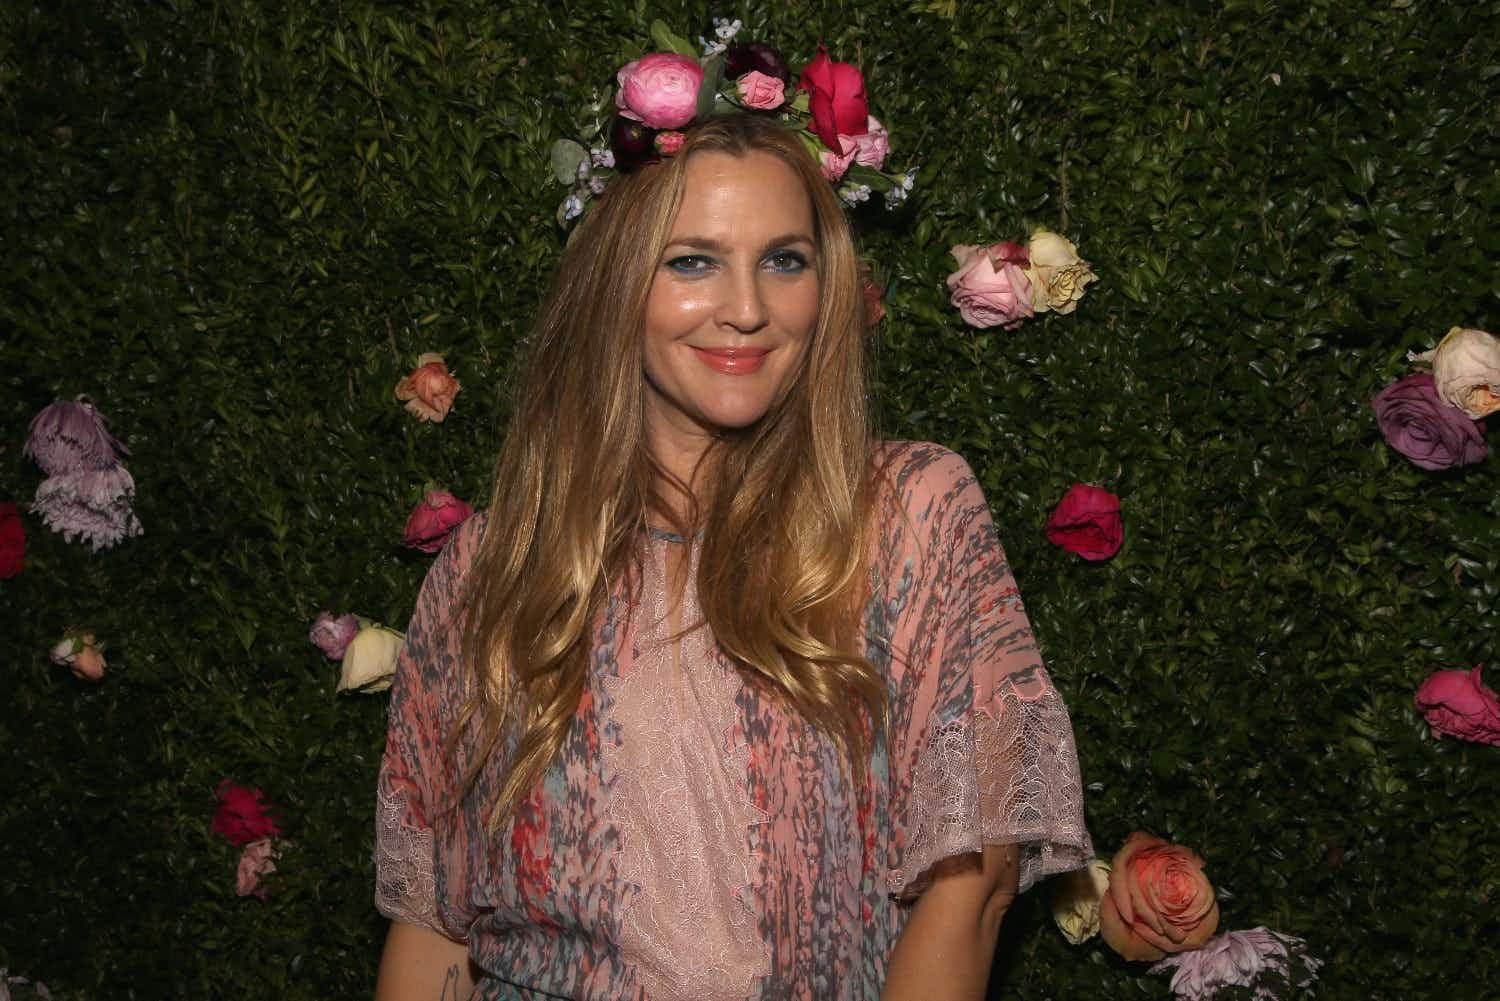 Drew Barrymore has opened a travel-themed pop-up store in NYC